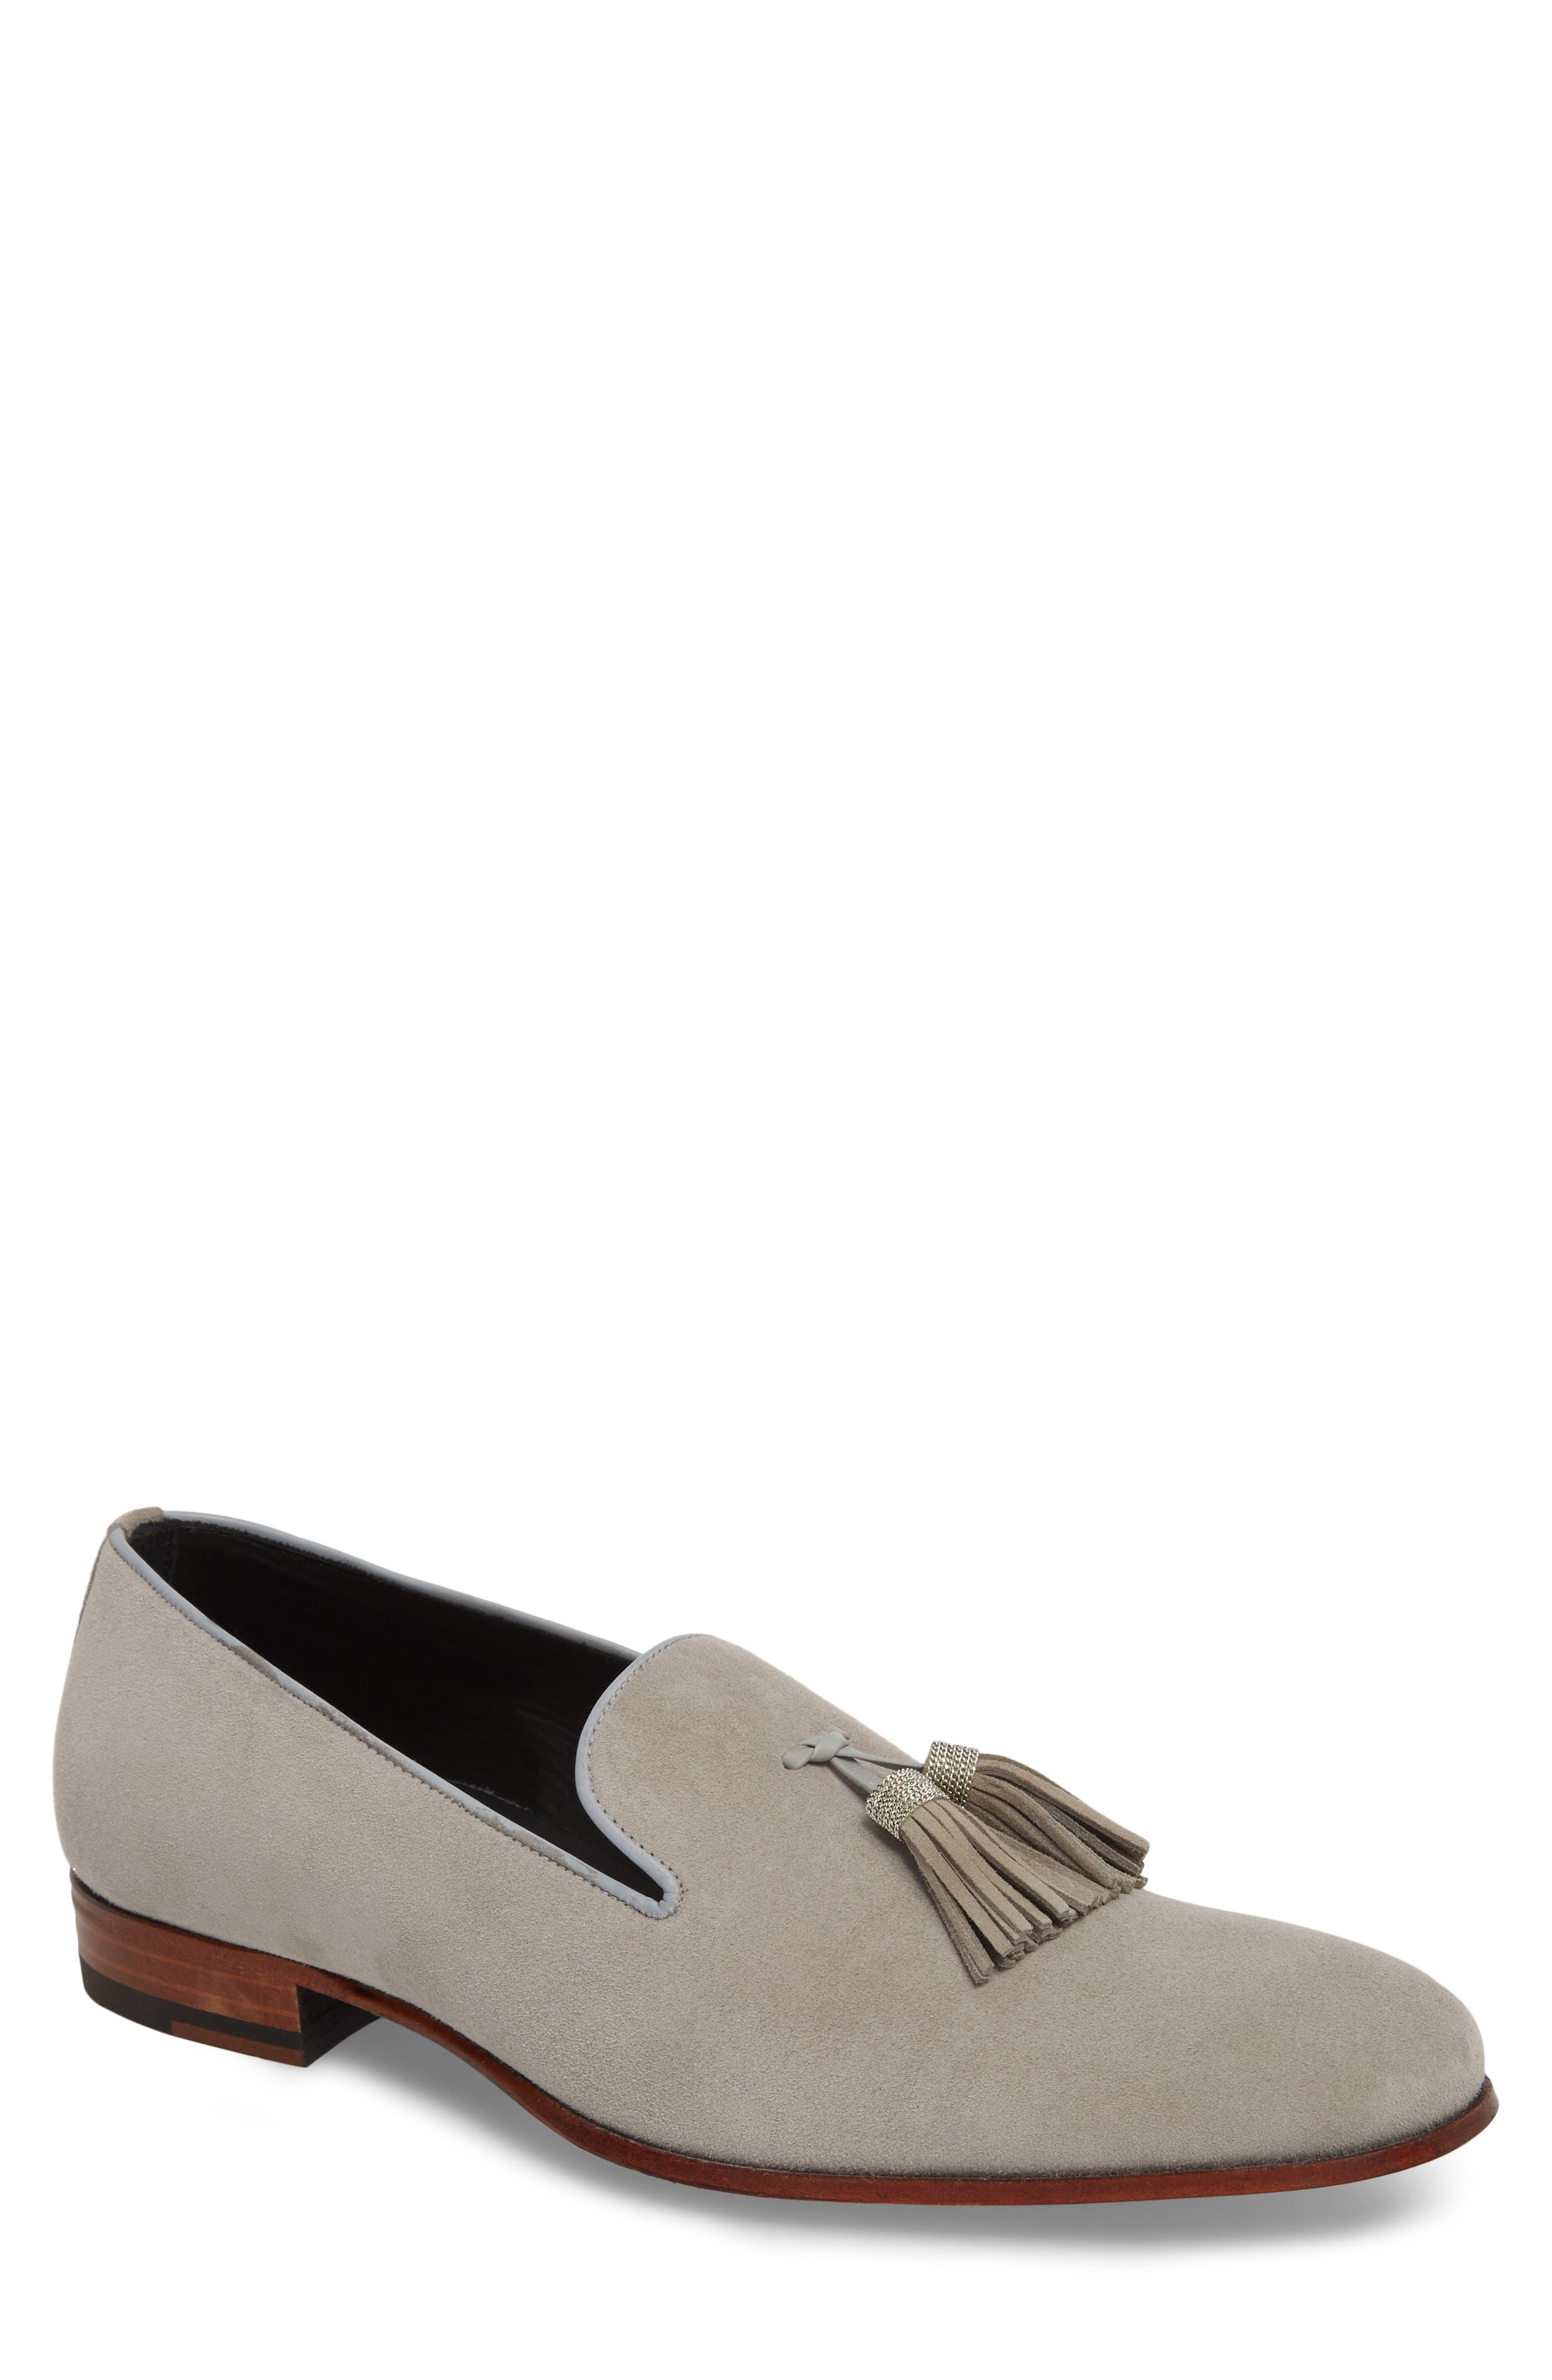 Picus Tassel Loafer,                             Main thumbnail 1, color,                             054